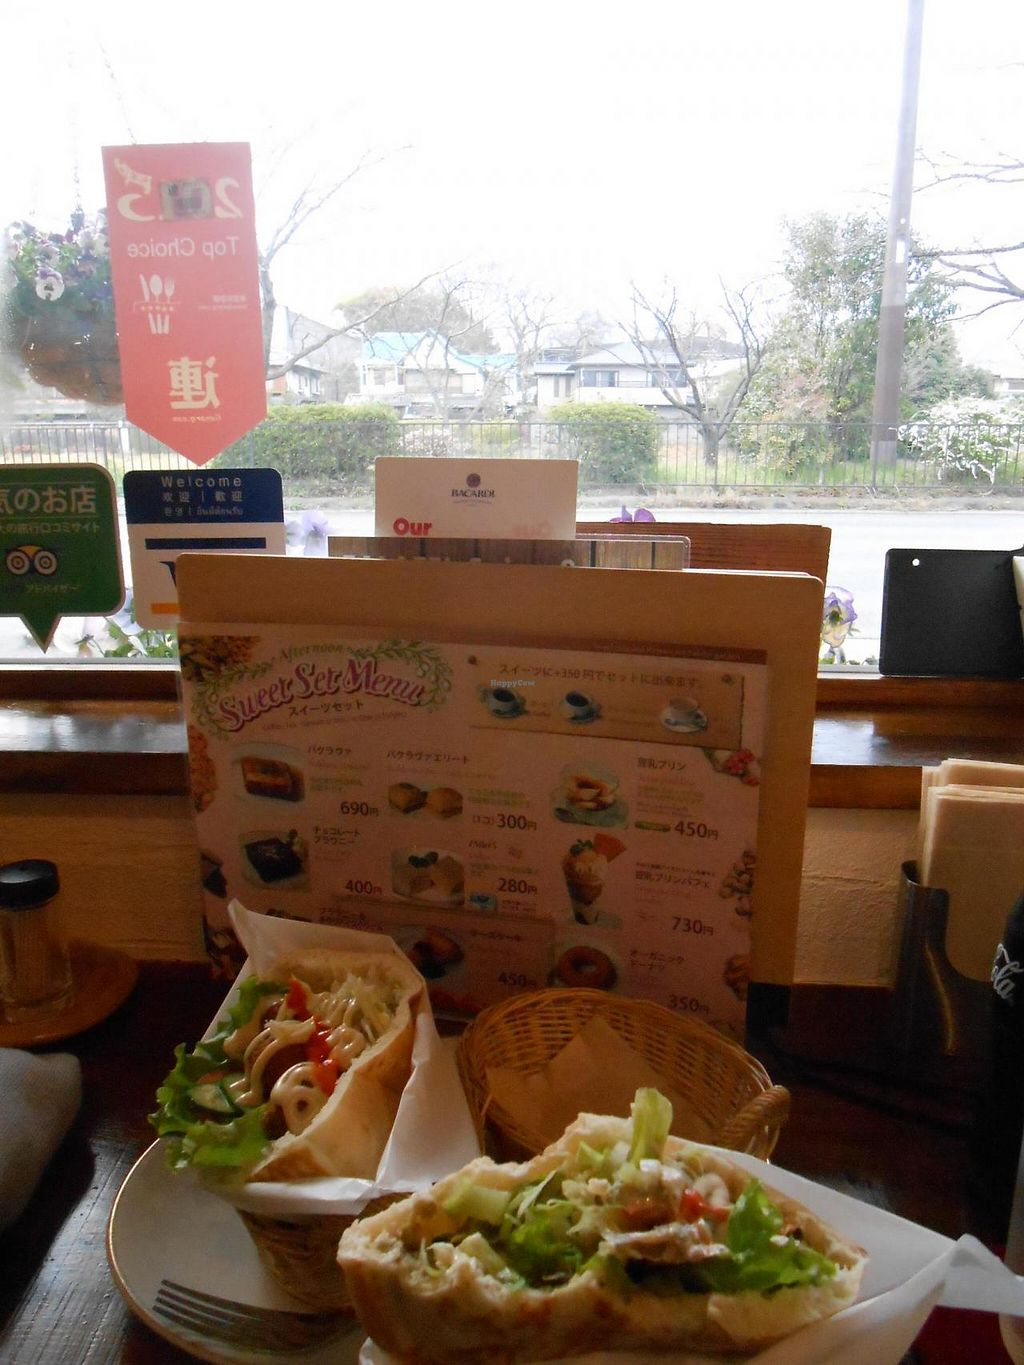 """Photo of Falafel Garden  by <a href=""""/members/profile/Den28"""">Den28</a> <br/>Falafel Garden <br/> June 7, 2015  - <a href='/contact/abuse/image/26257/105074'>Report</a>"""